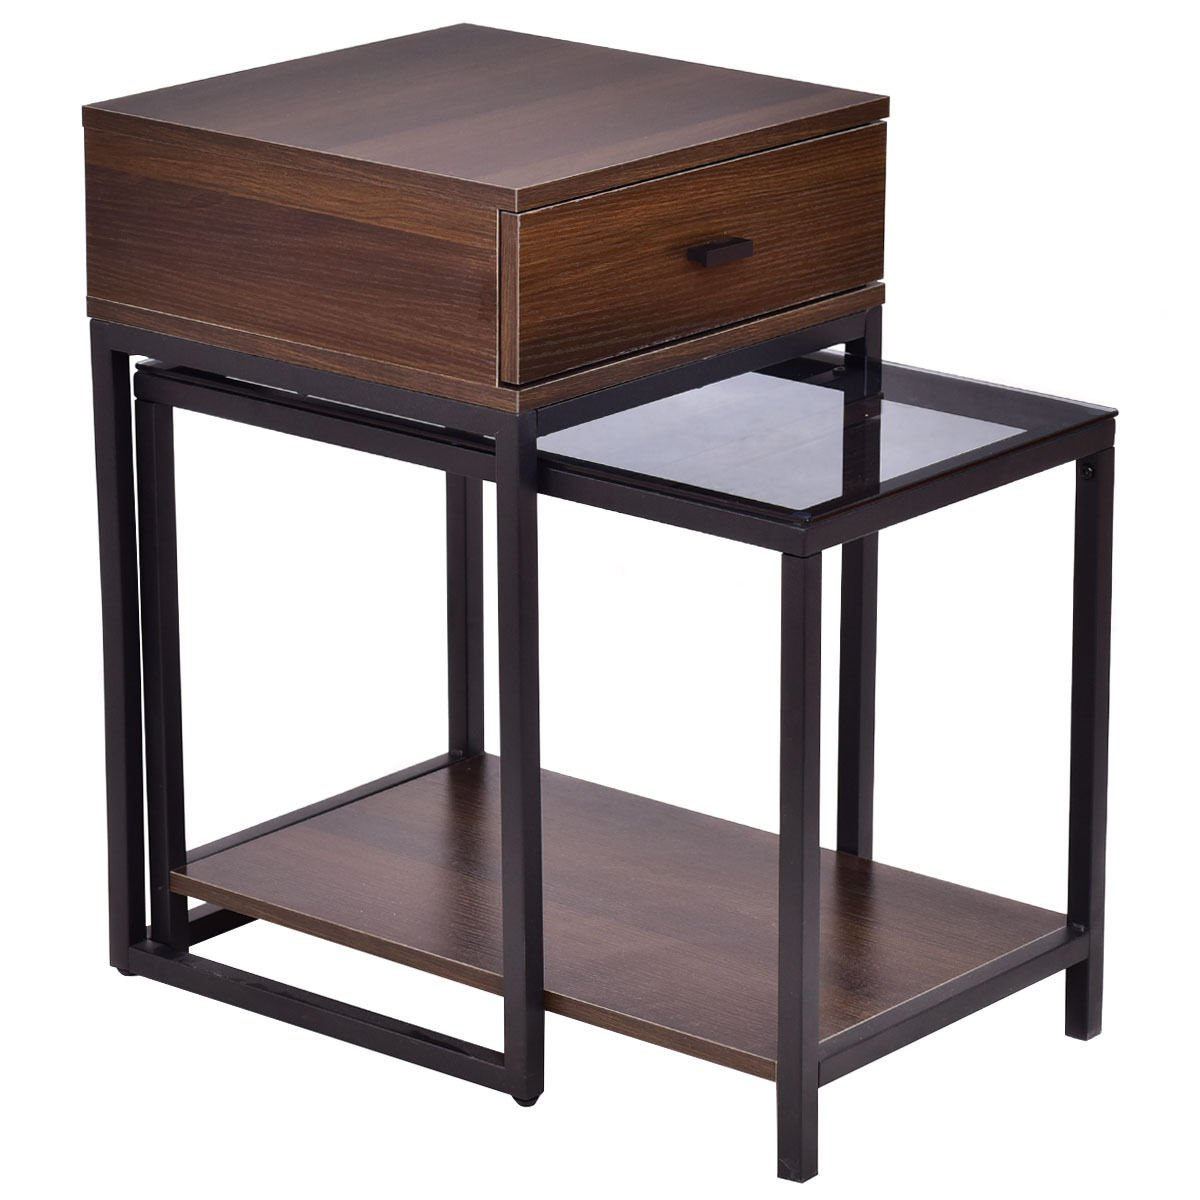 Nesting Table Coffee Table Side Table End Table Metal Frame Wood Glass Top 2PCS